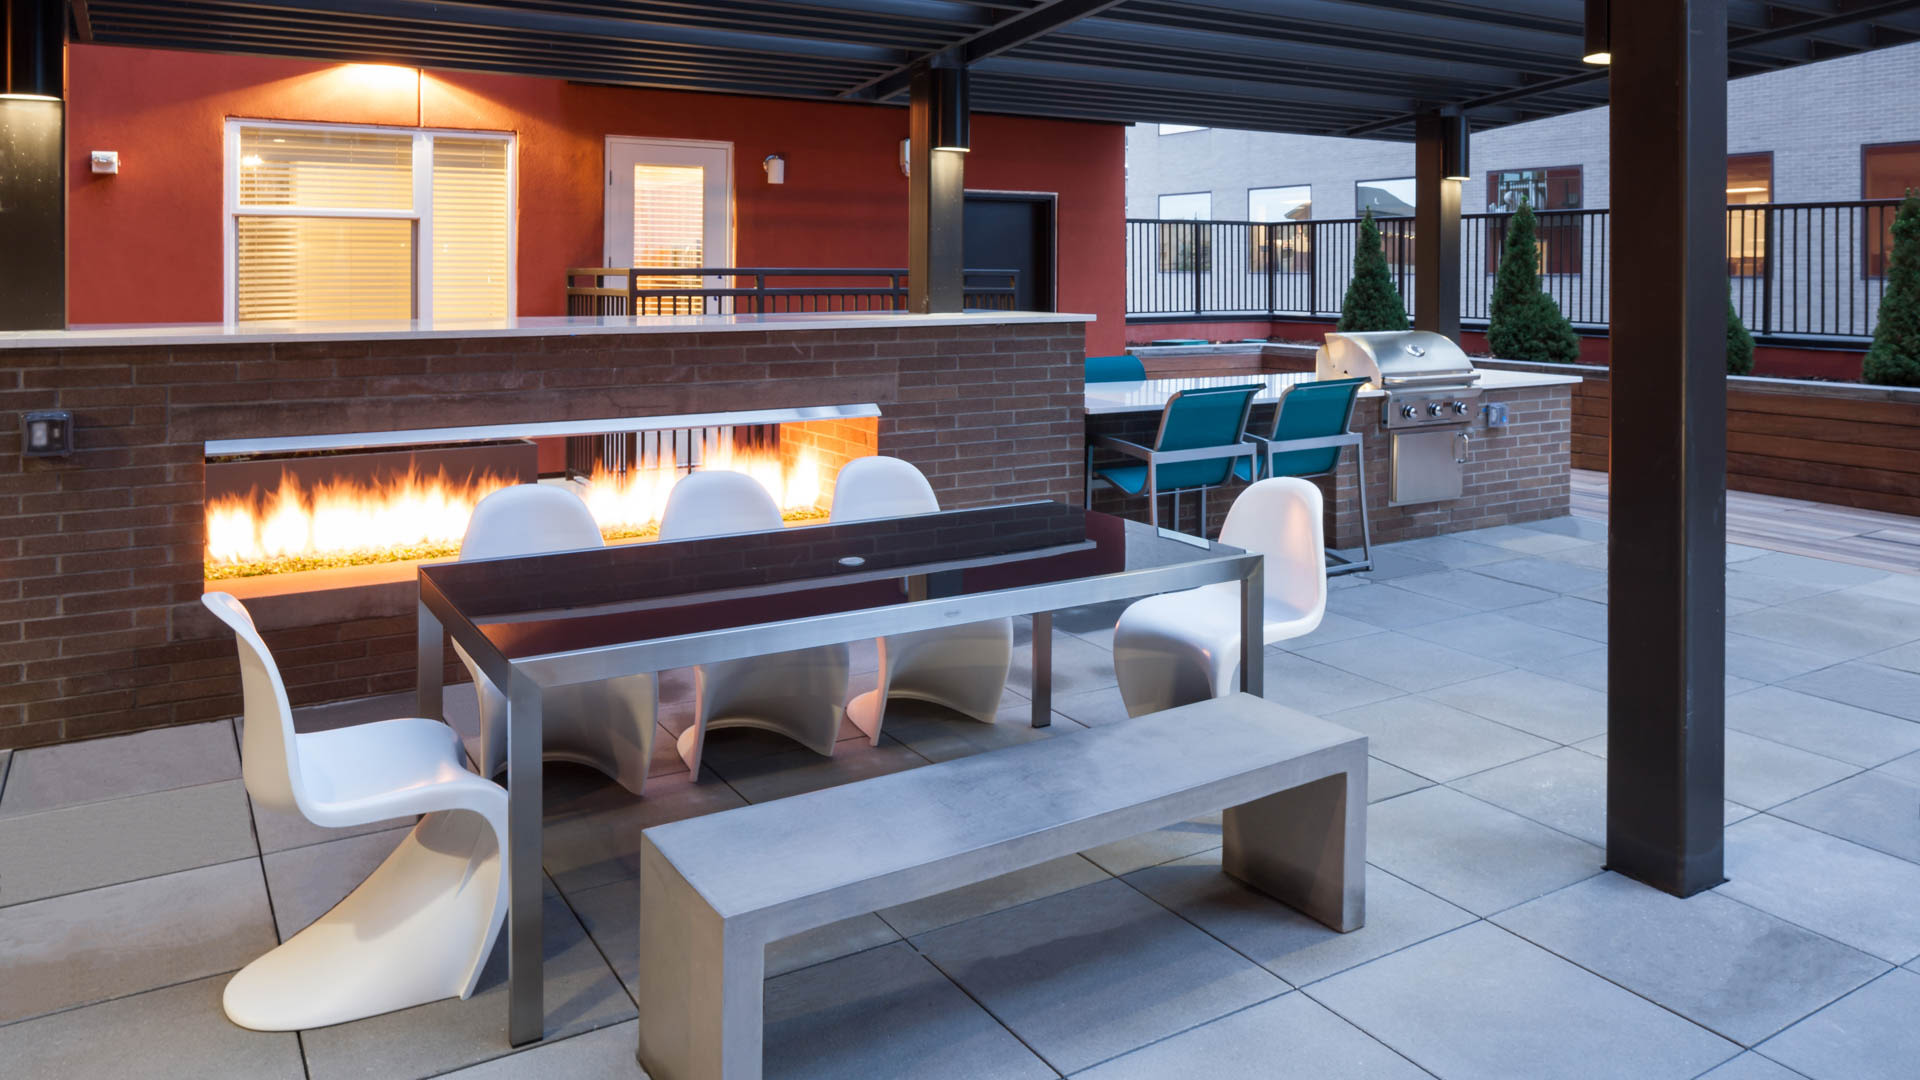 Radius Uptown Apartments - Rooftop Lounge with Fireplace